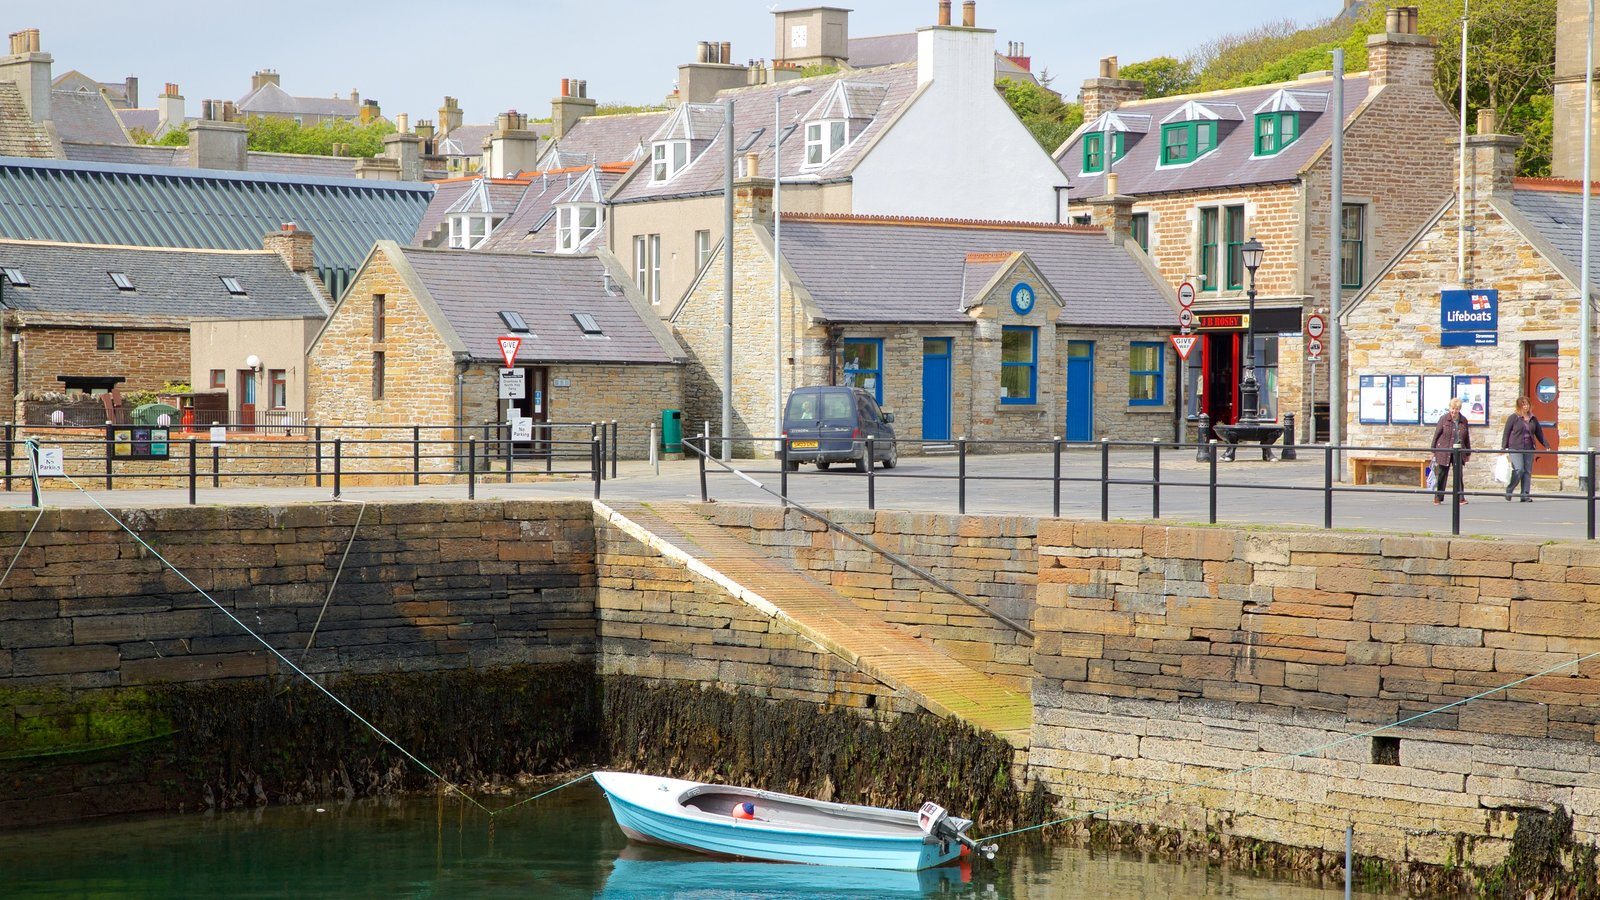 Stromness featuring a coastal town and a bay or harbor